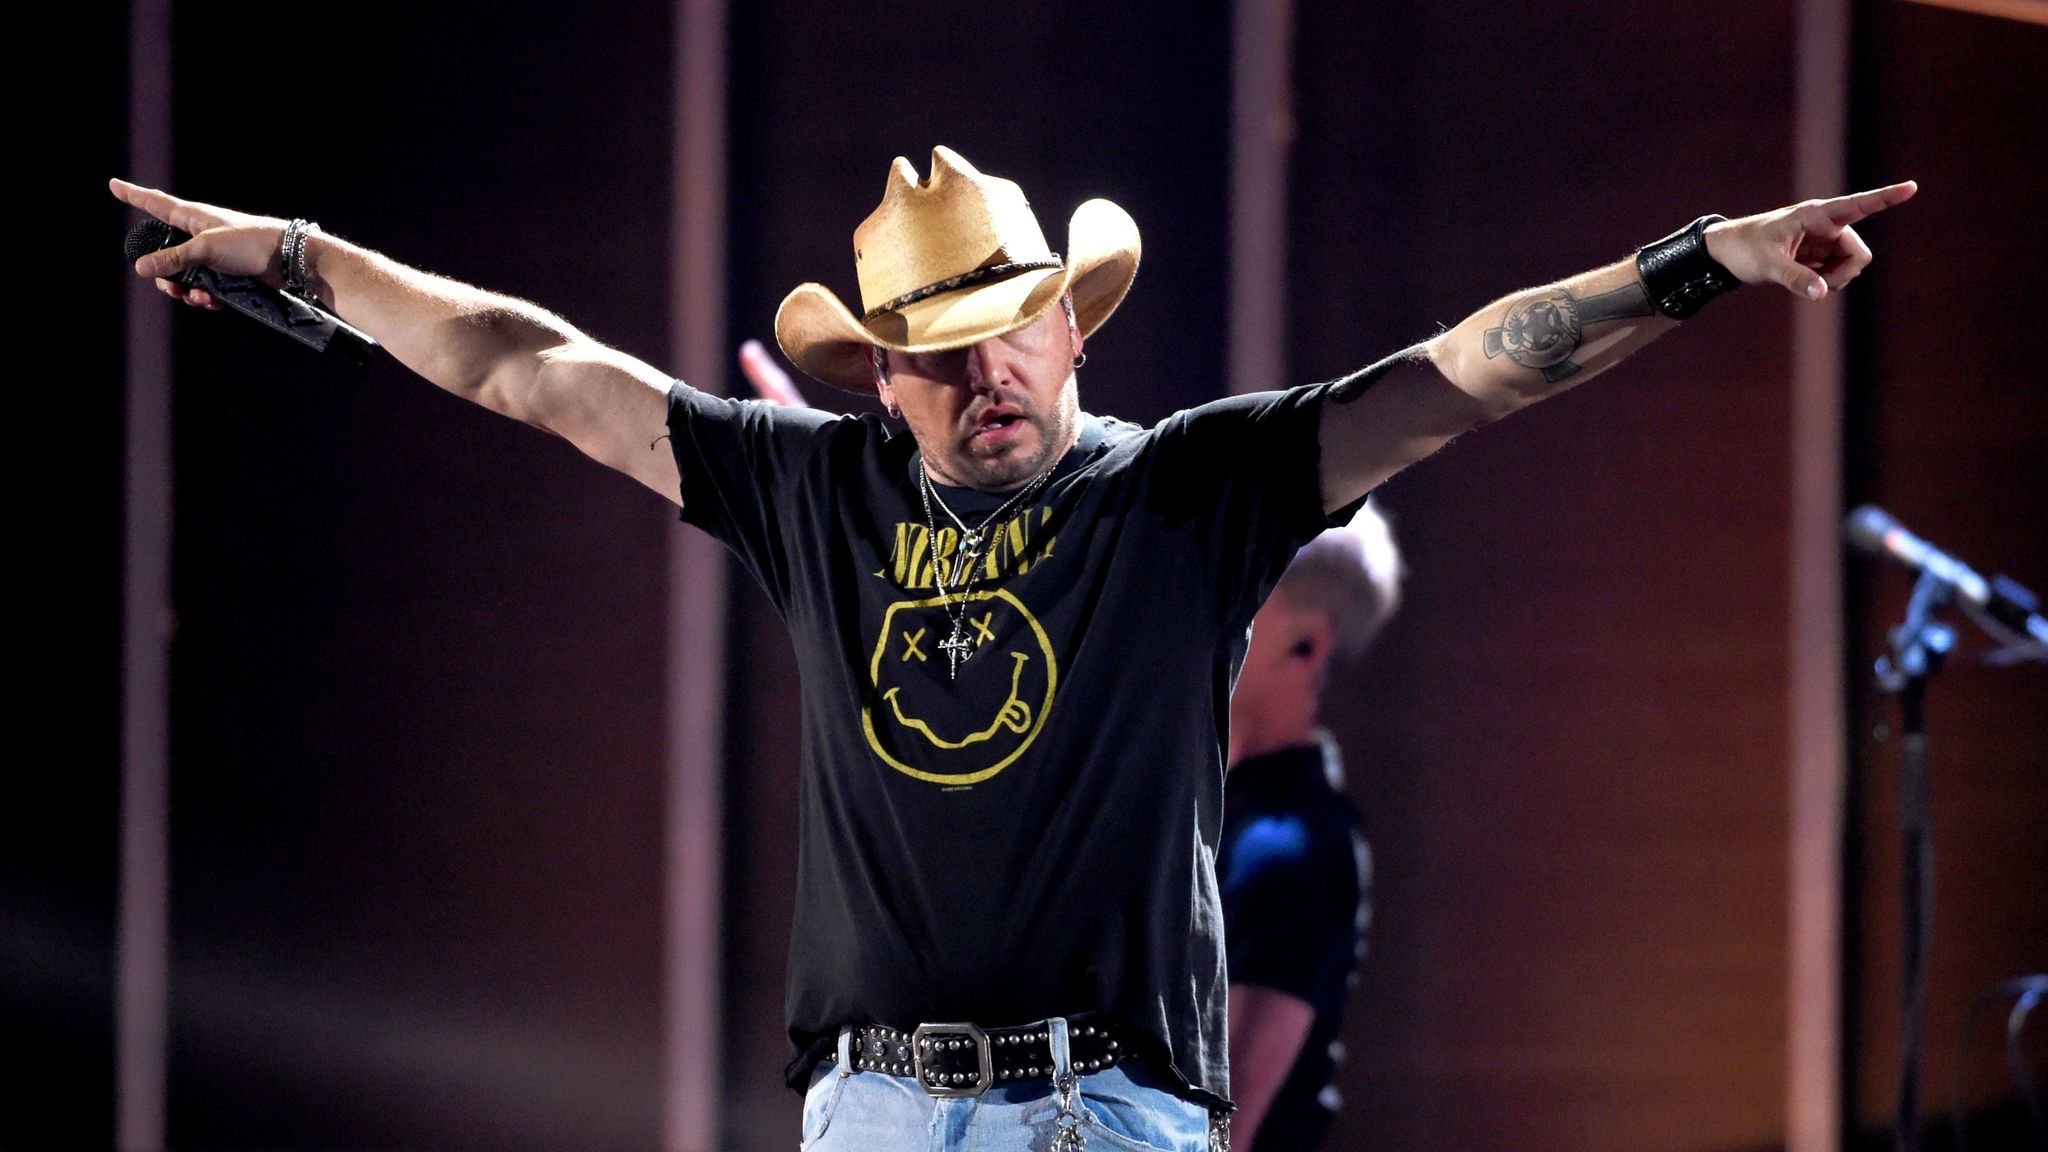 Social Media Reacts to Jason Aldean's 'Saturday Night Live' Performance